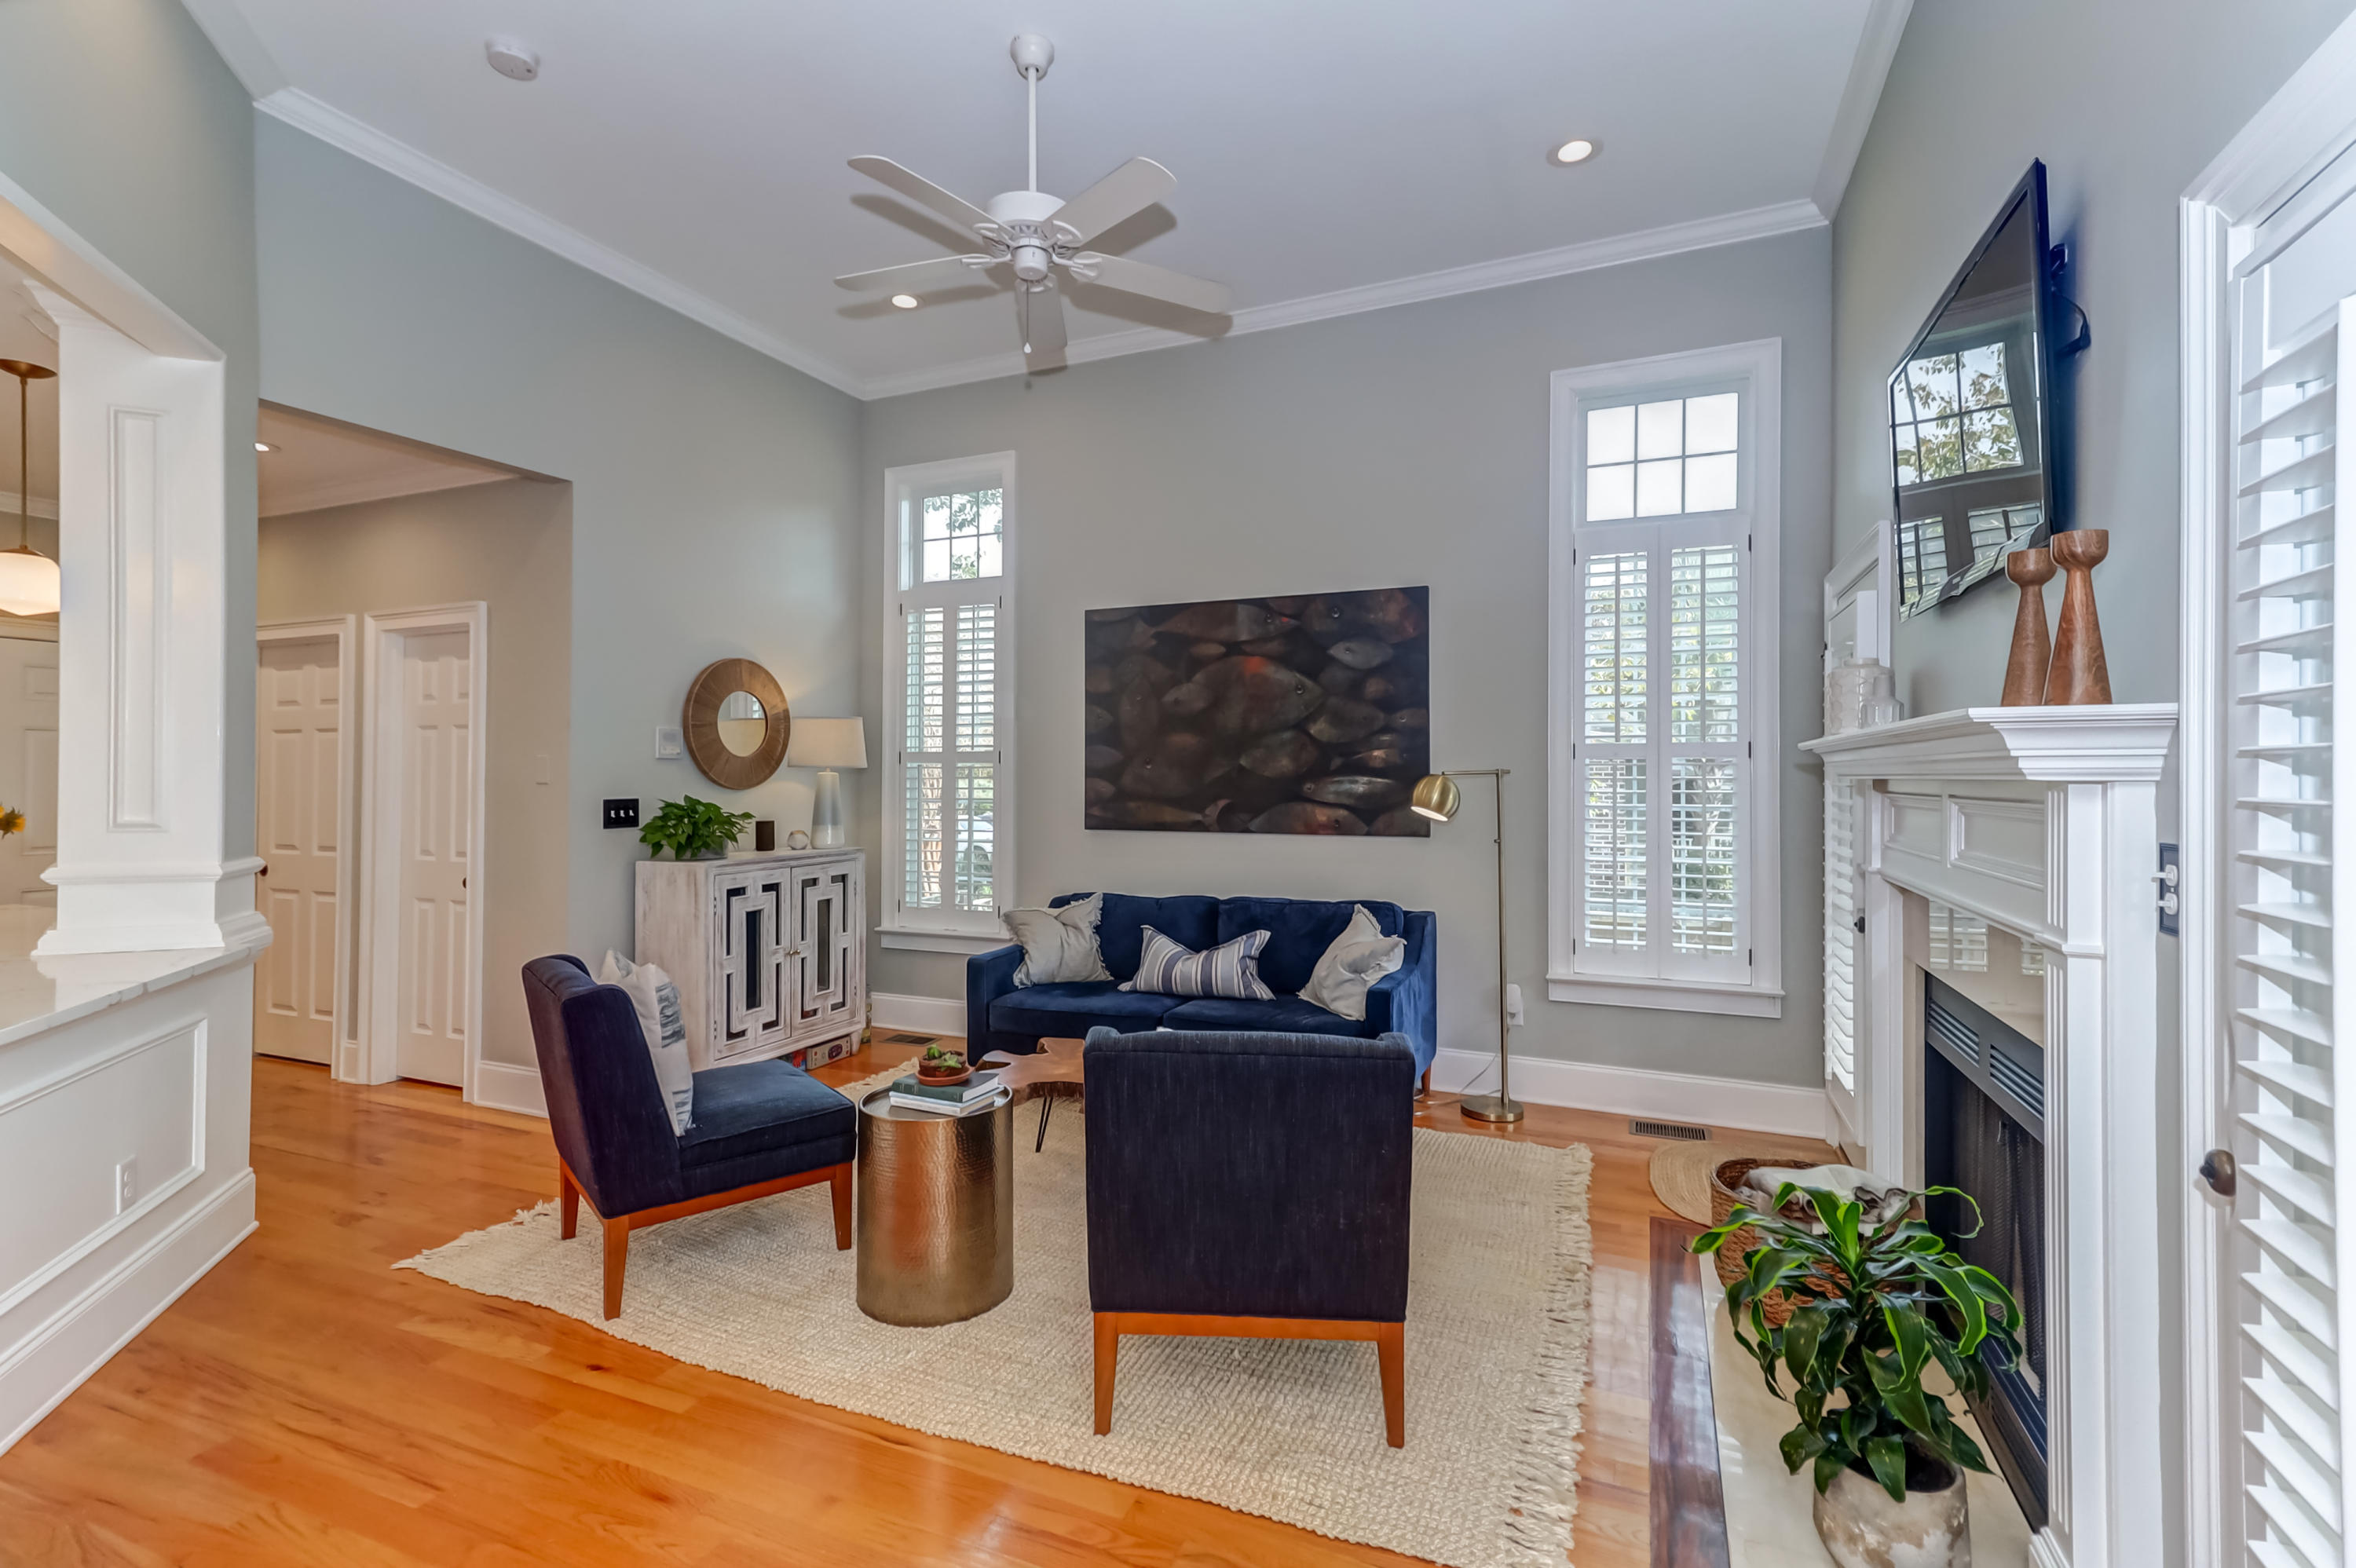 Woodward Pointe Homes For Sale - 657 White Chapel, Charleston, SC - 38